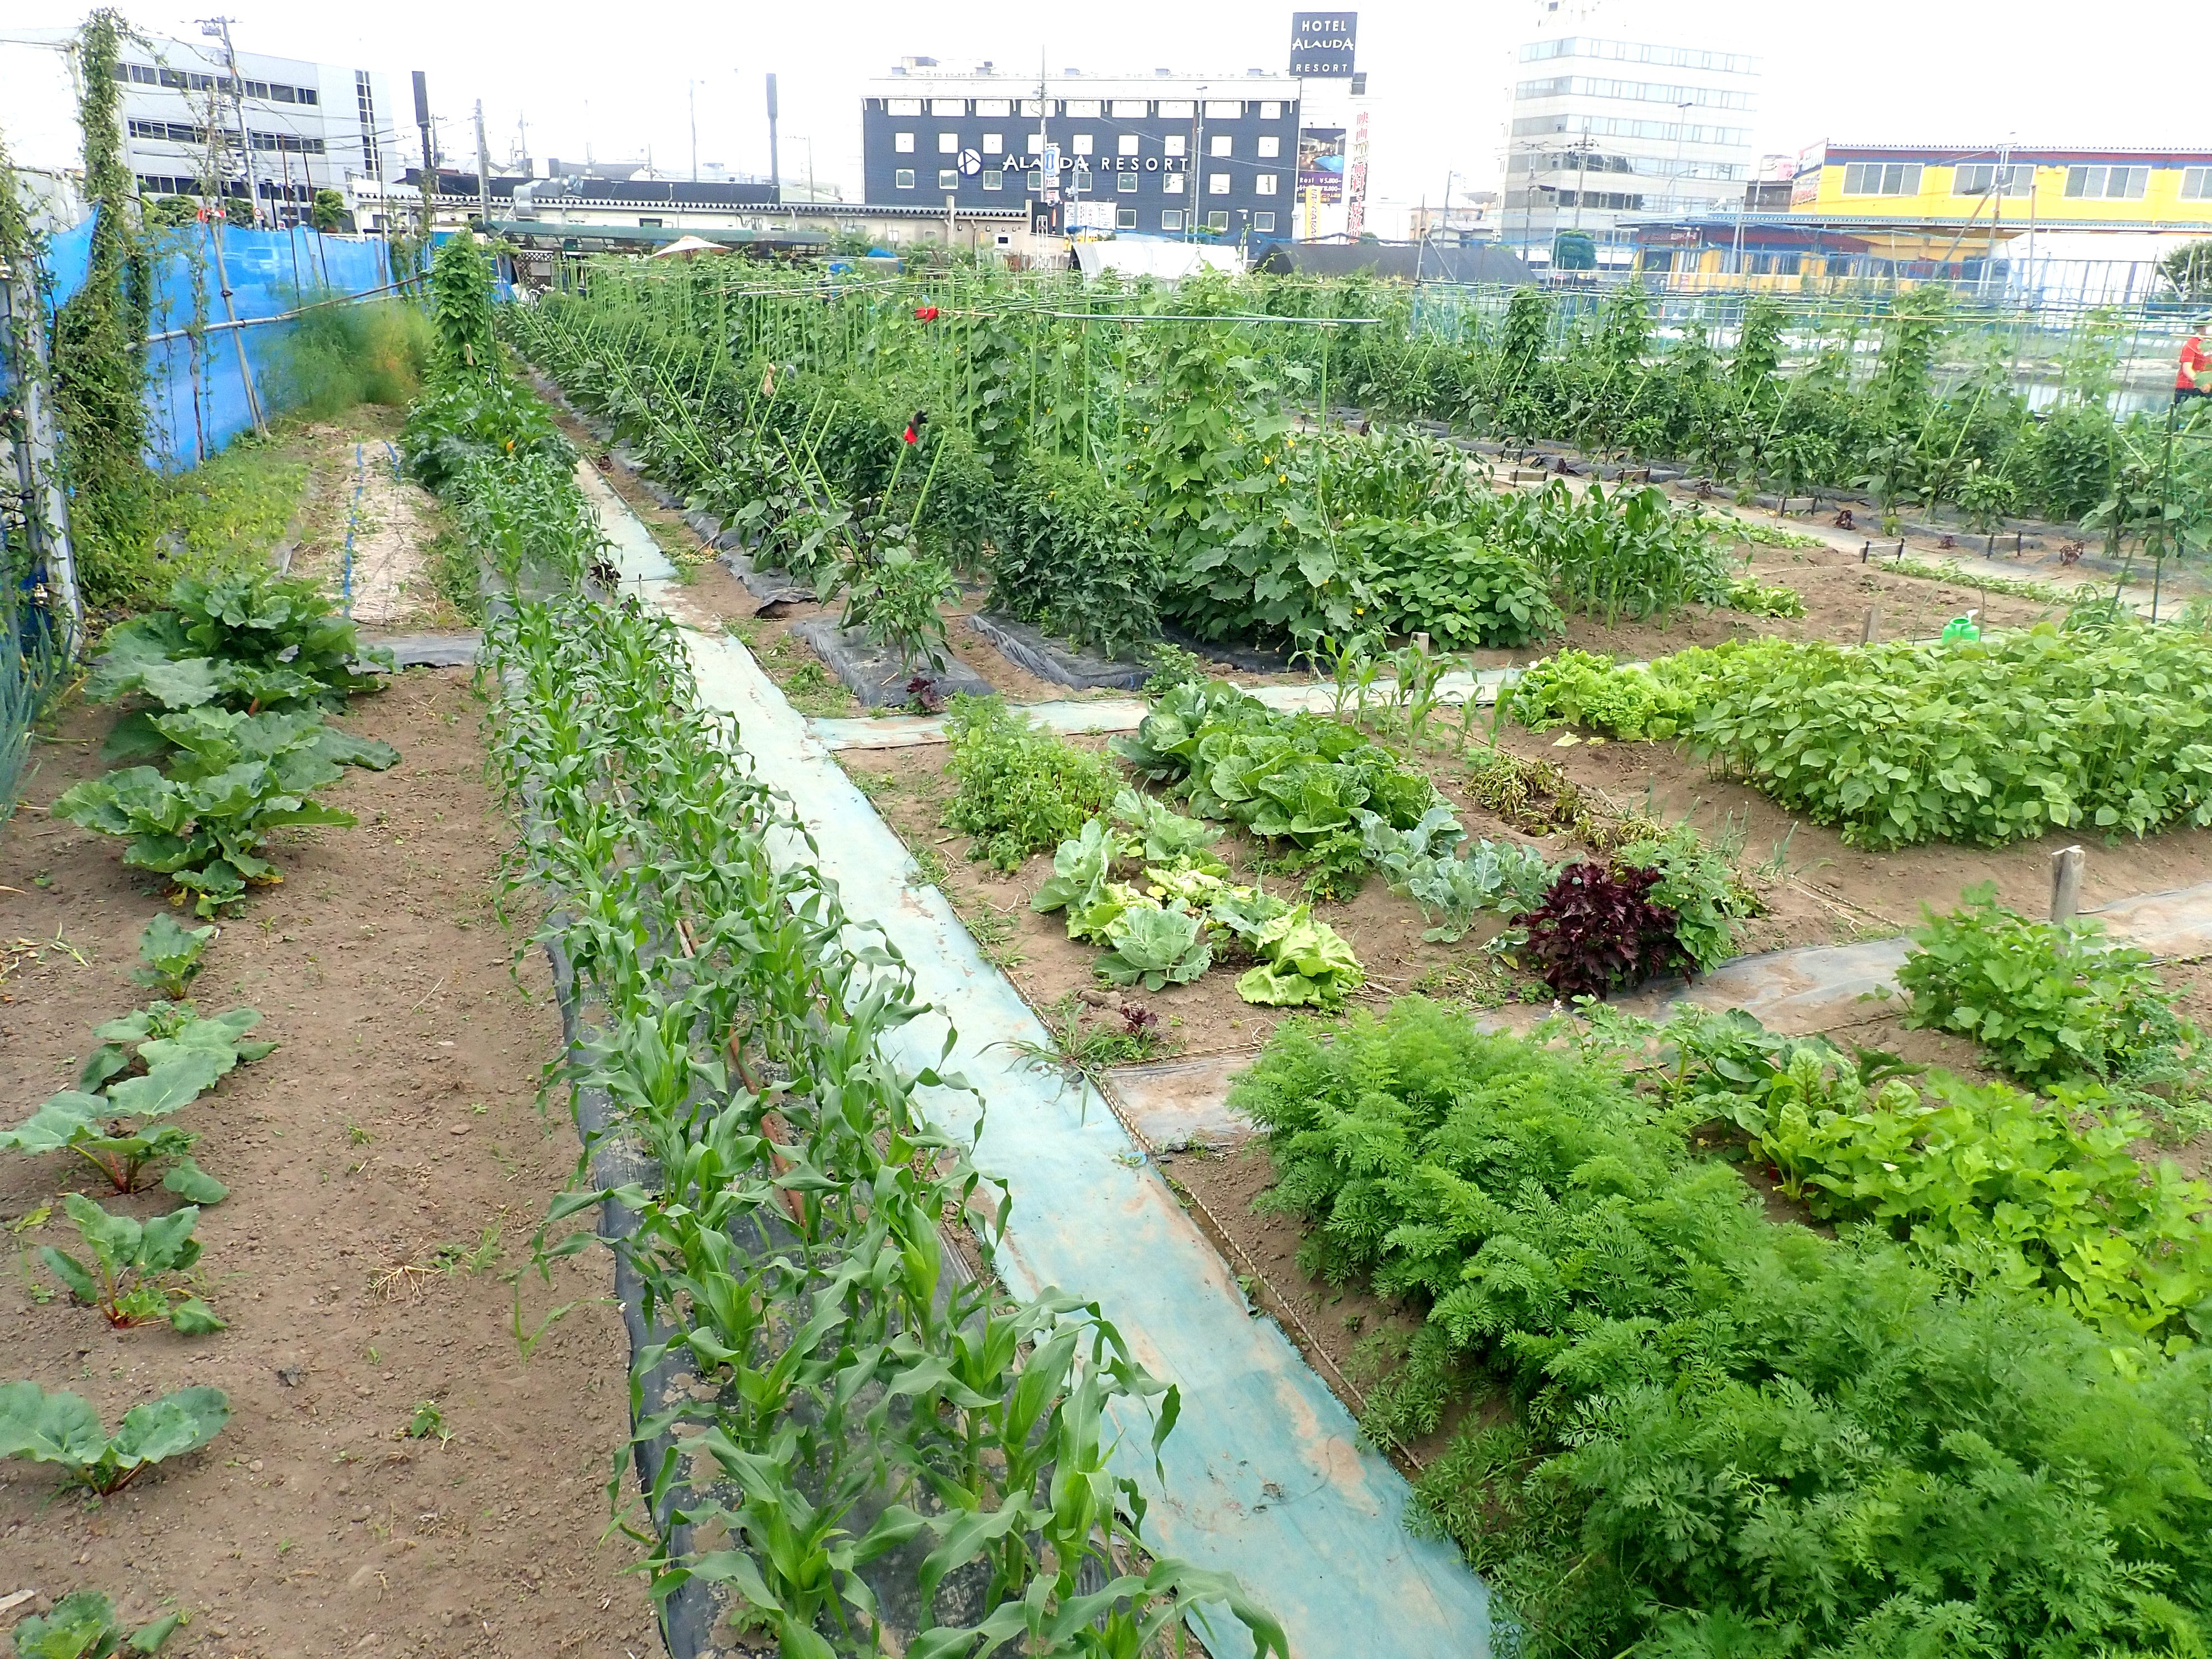 Here's-How-To-Join-A-Community-Garden-In-Tokyo-1.jpg